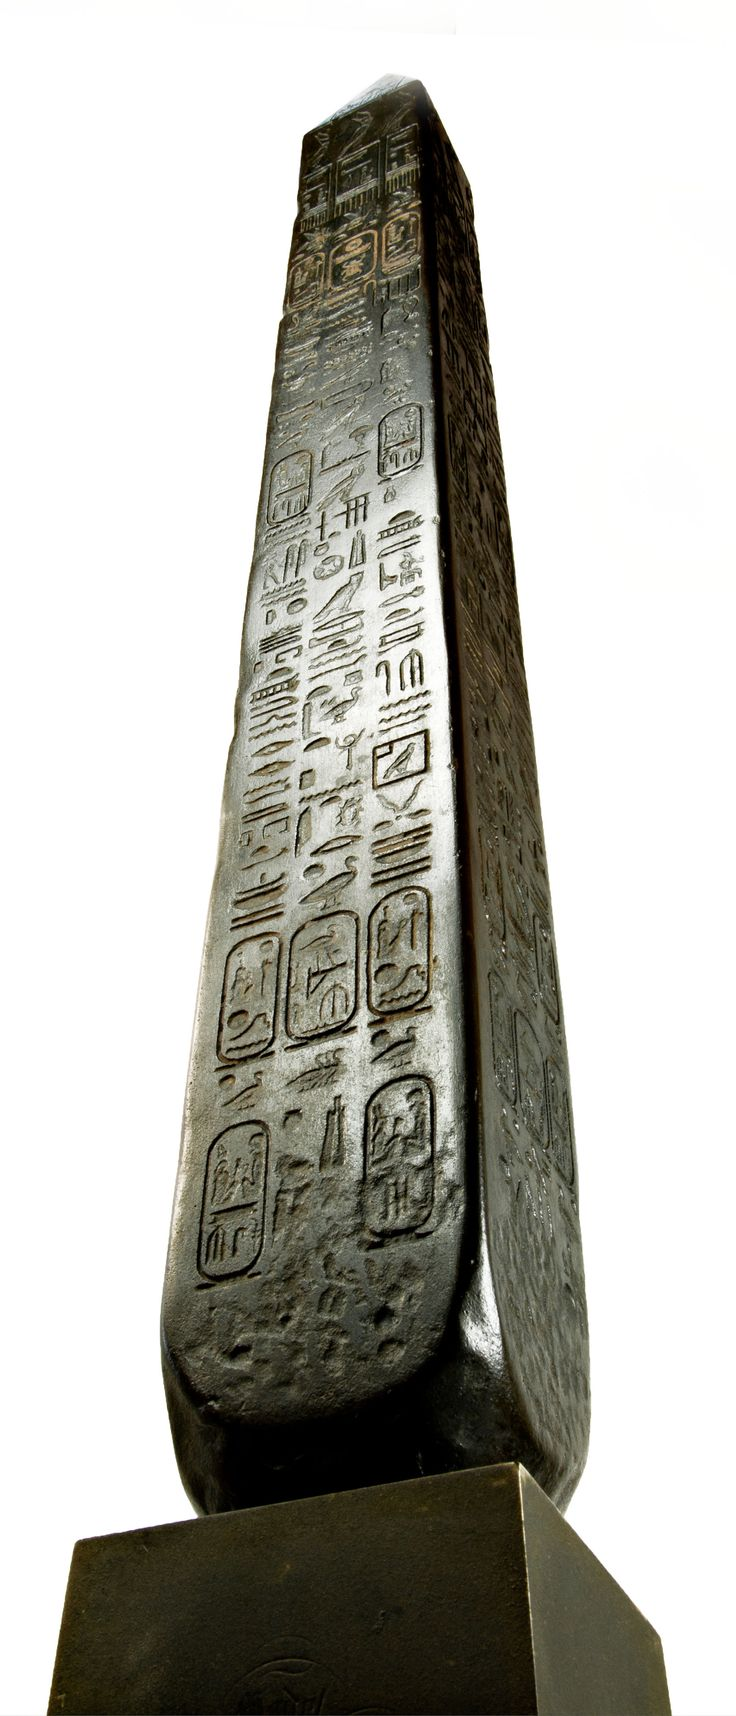 Cleopatra's Needle, brought from Alexandria to London, was erected on the Thames Embankment on September 12, 1878.